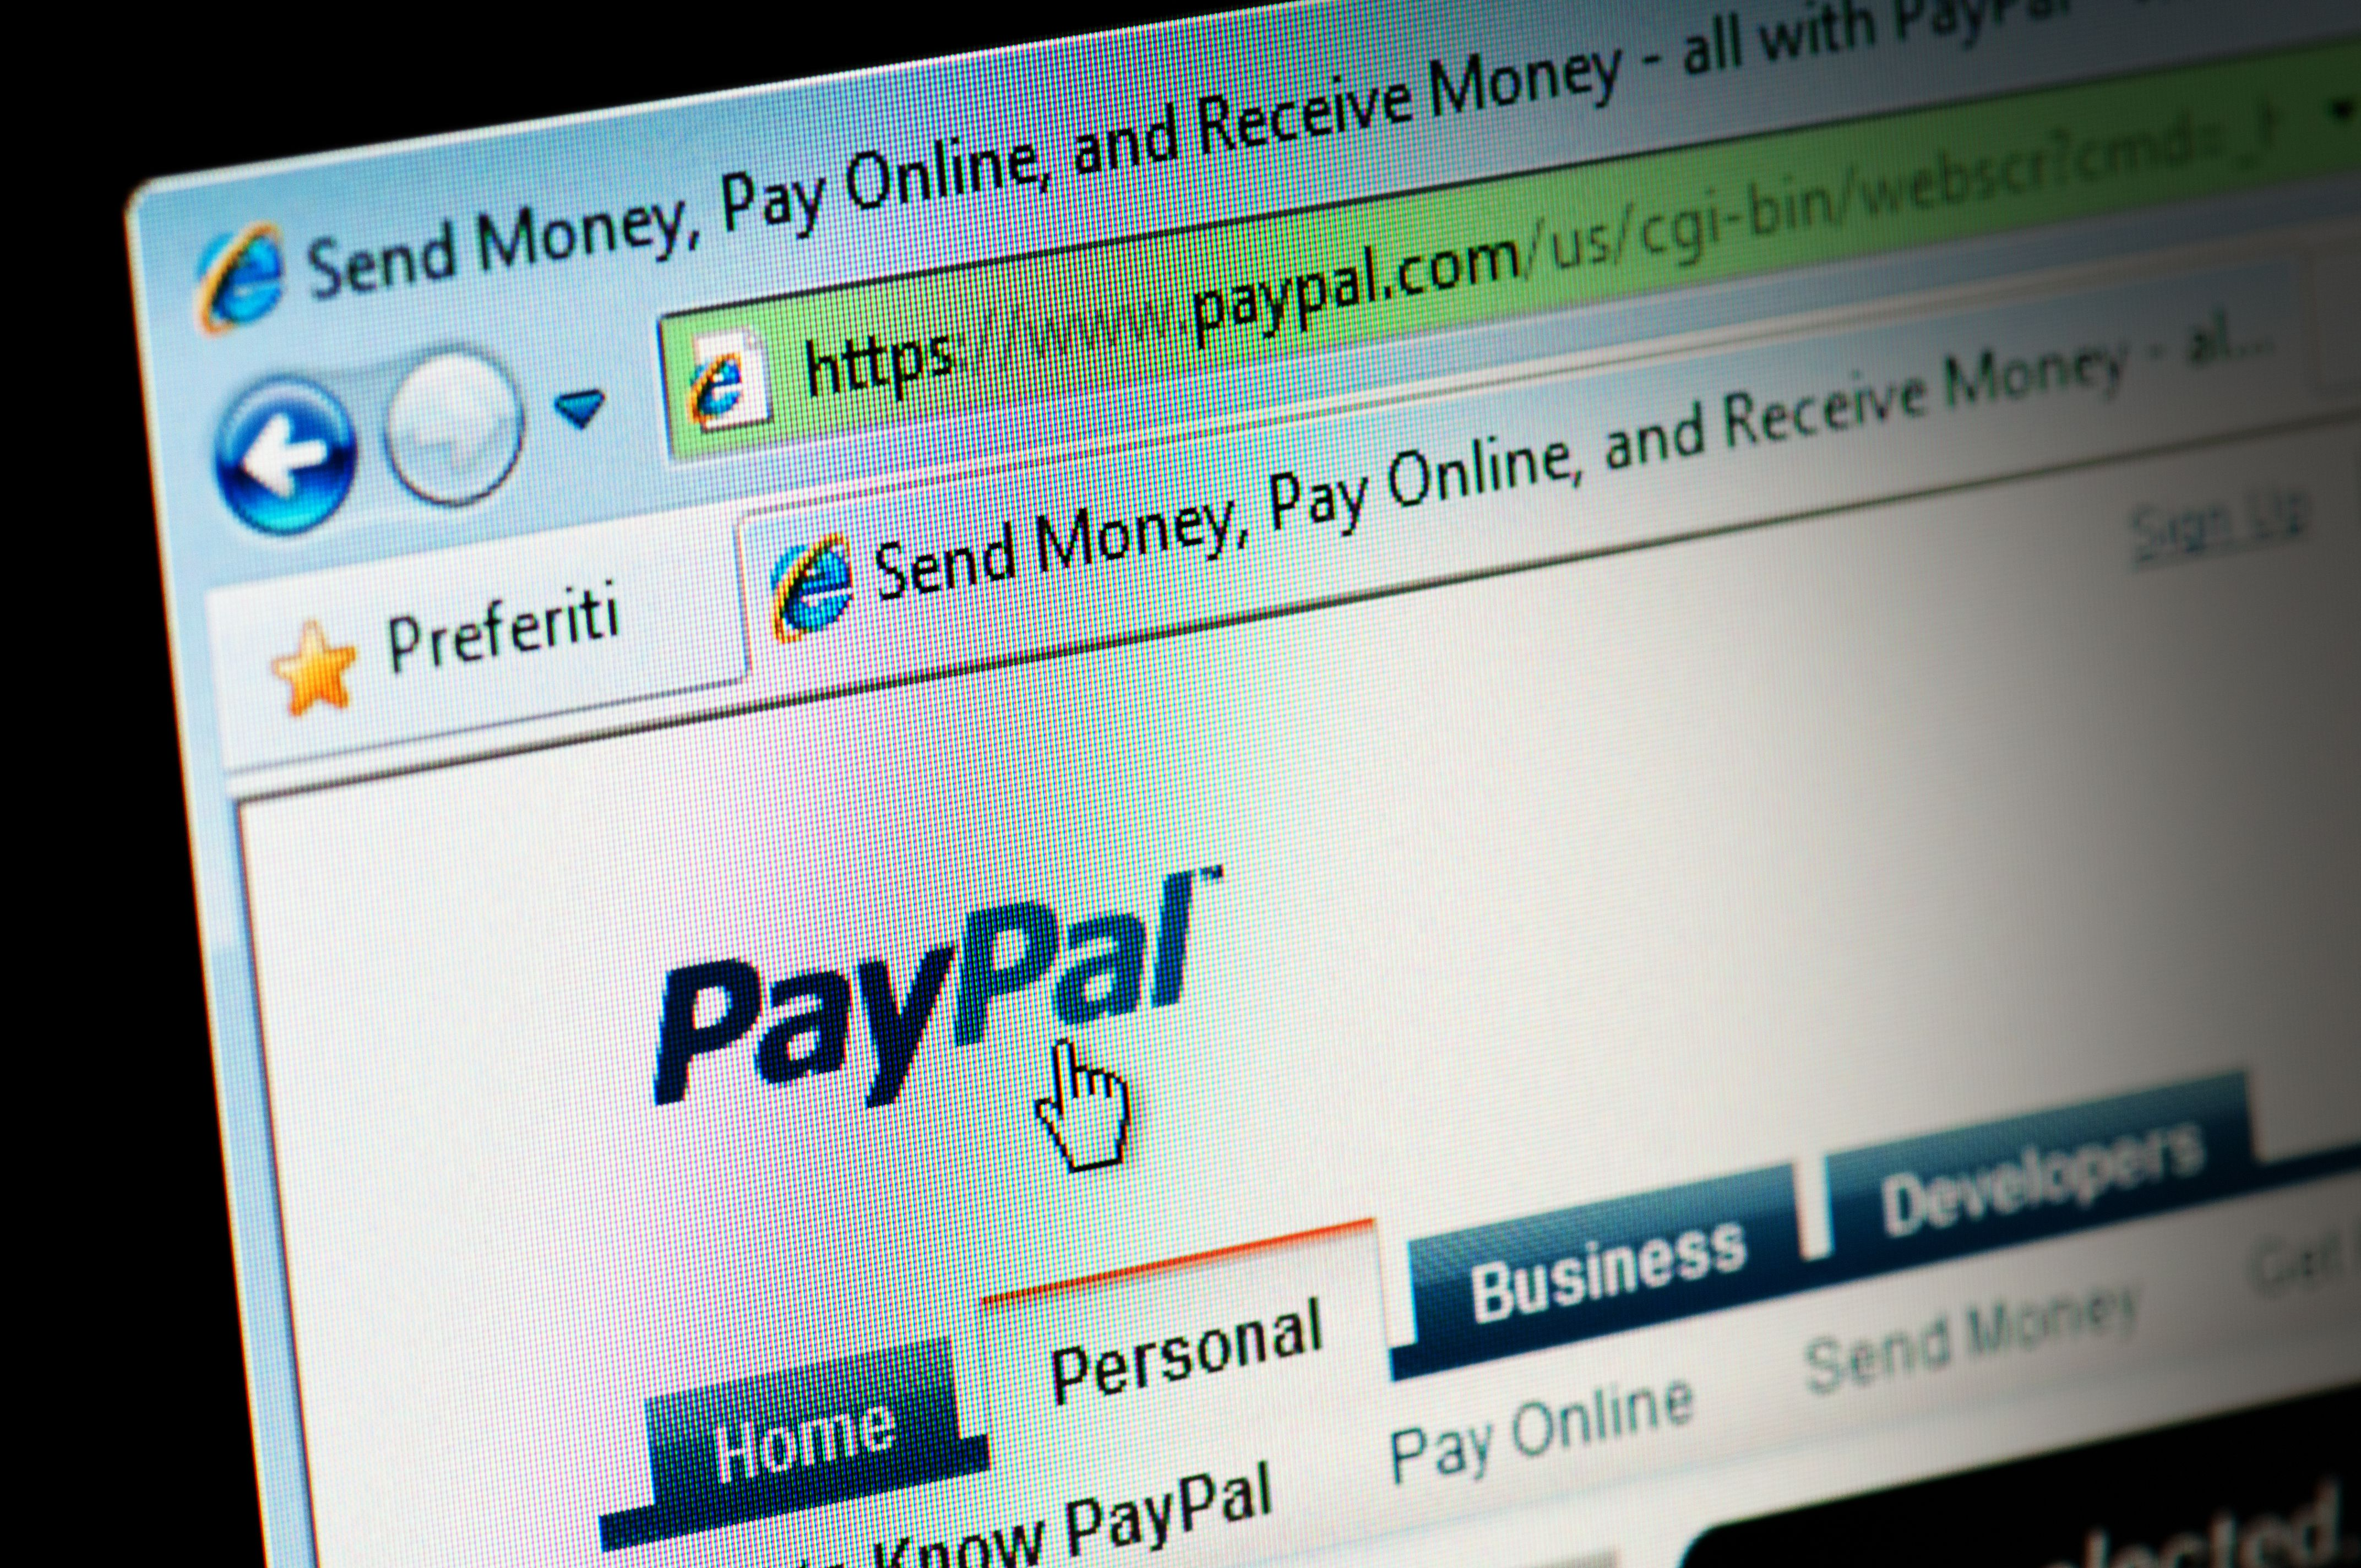 How to Add a Paypal Account Into Quicken